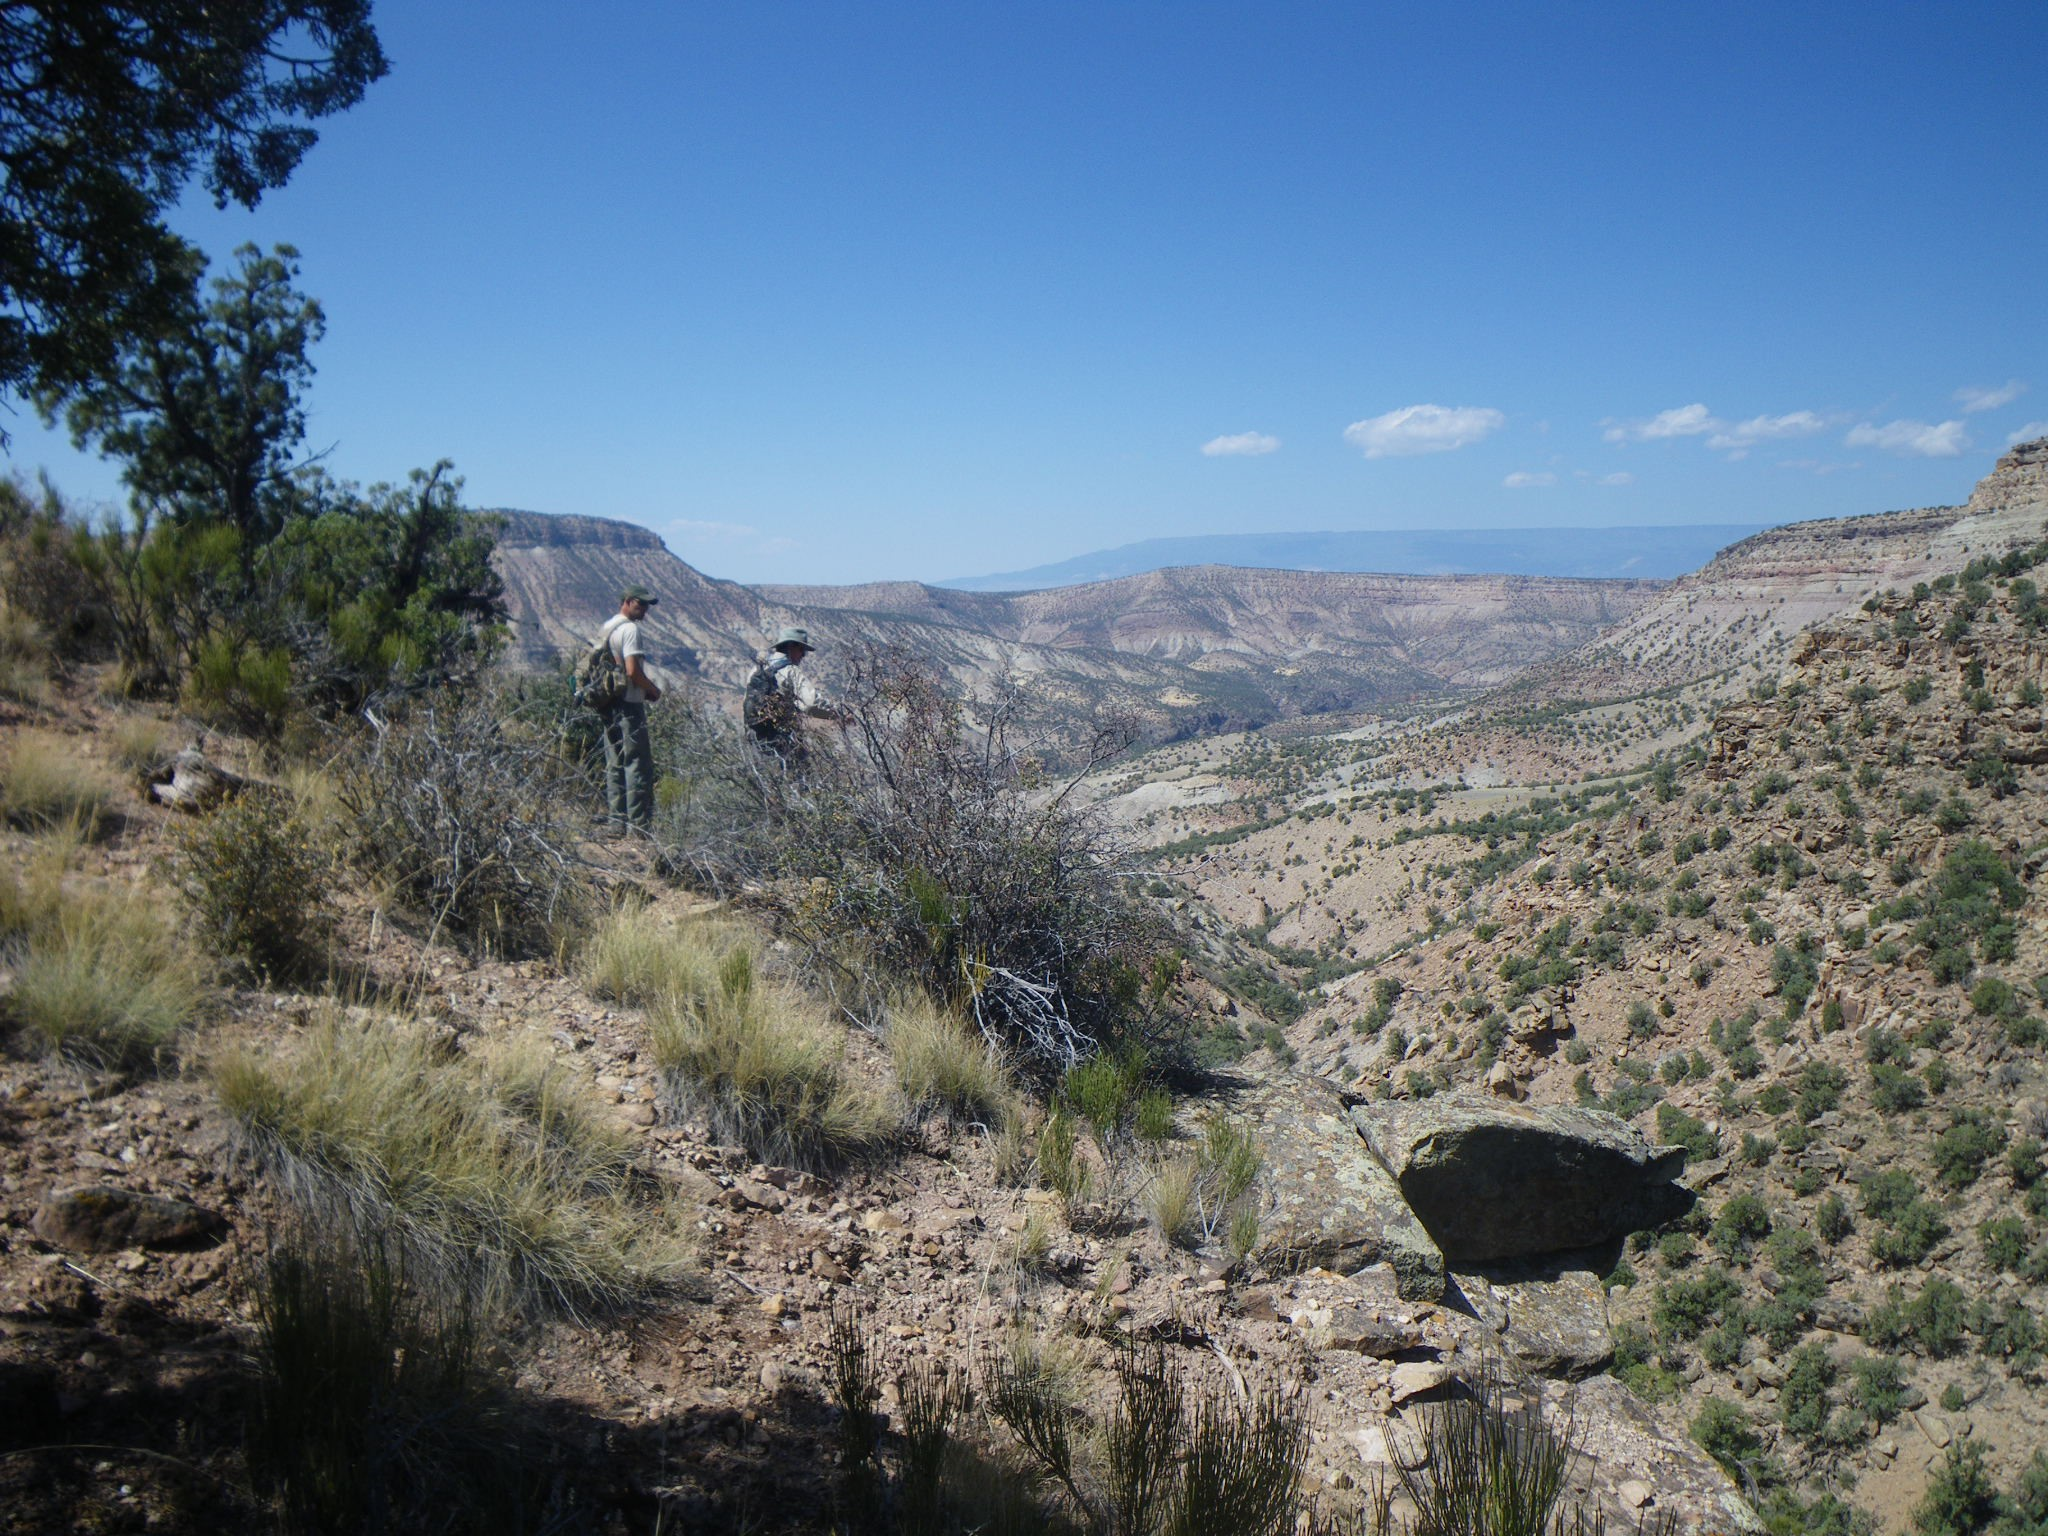 BLM staff working along the new Black Ridge Trail in the Gunnison Gorge Wilderness.